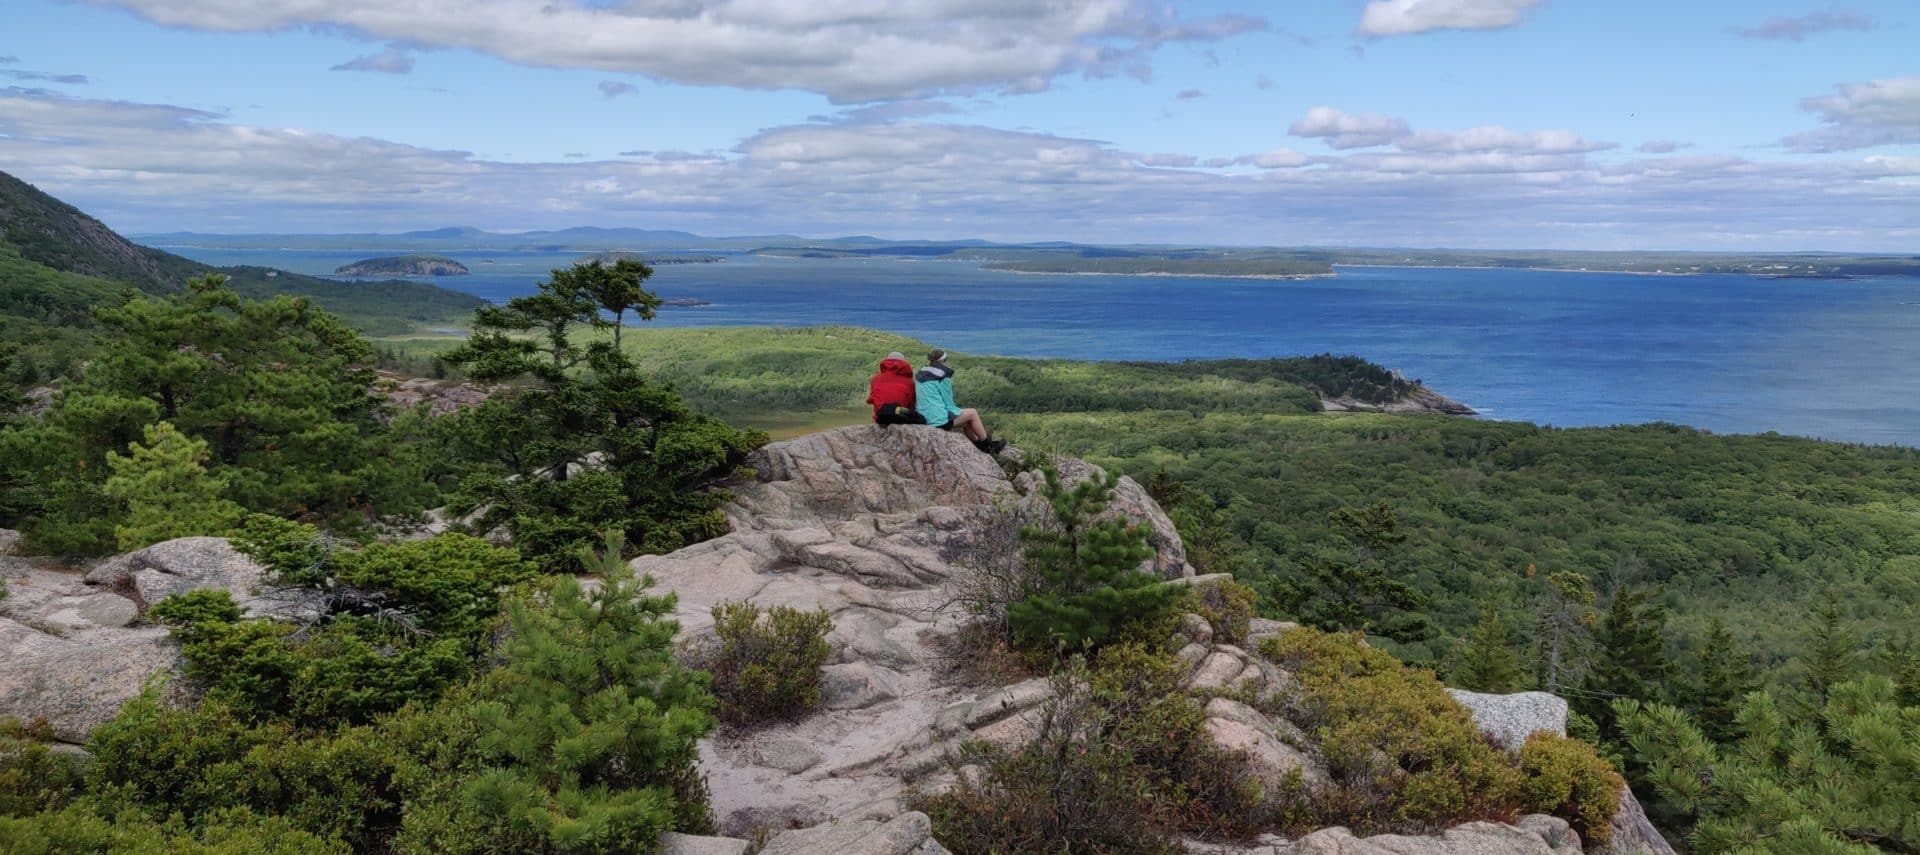 Panoramic view from rocky mountaintop, with water and distant islands, and a couple resting on a rock in distance taking in the view